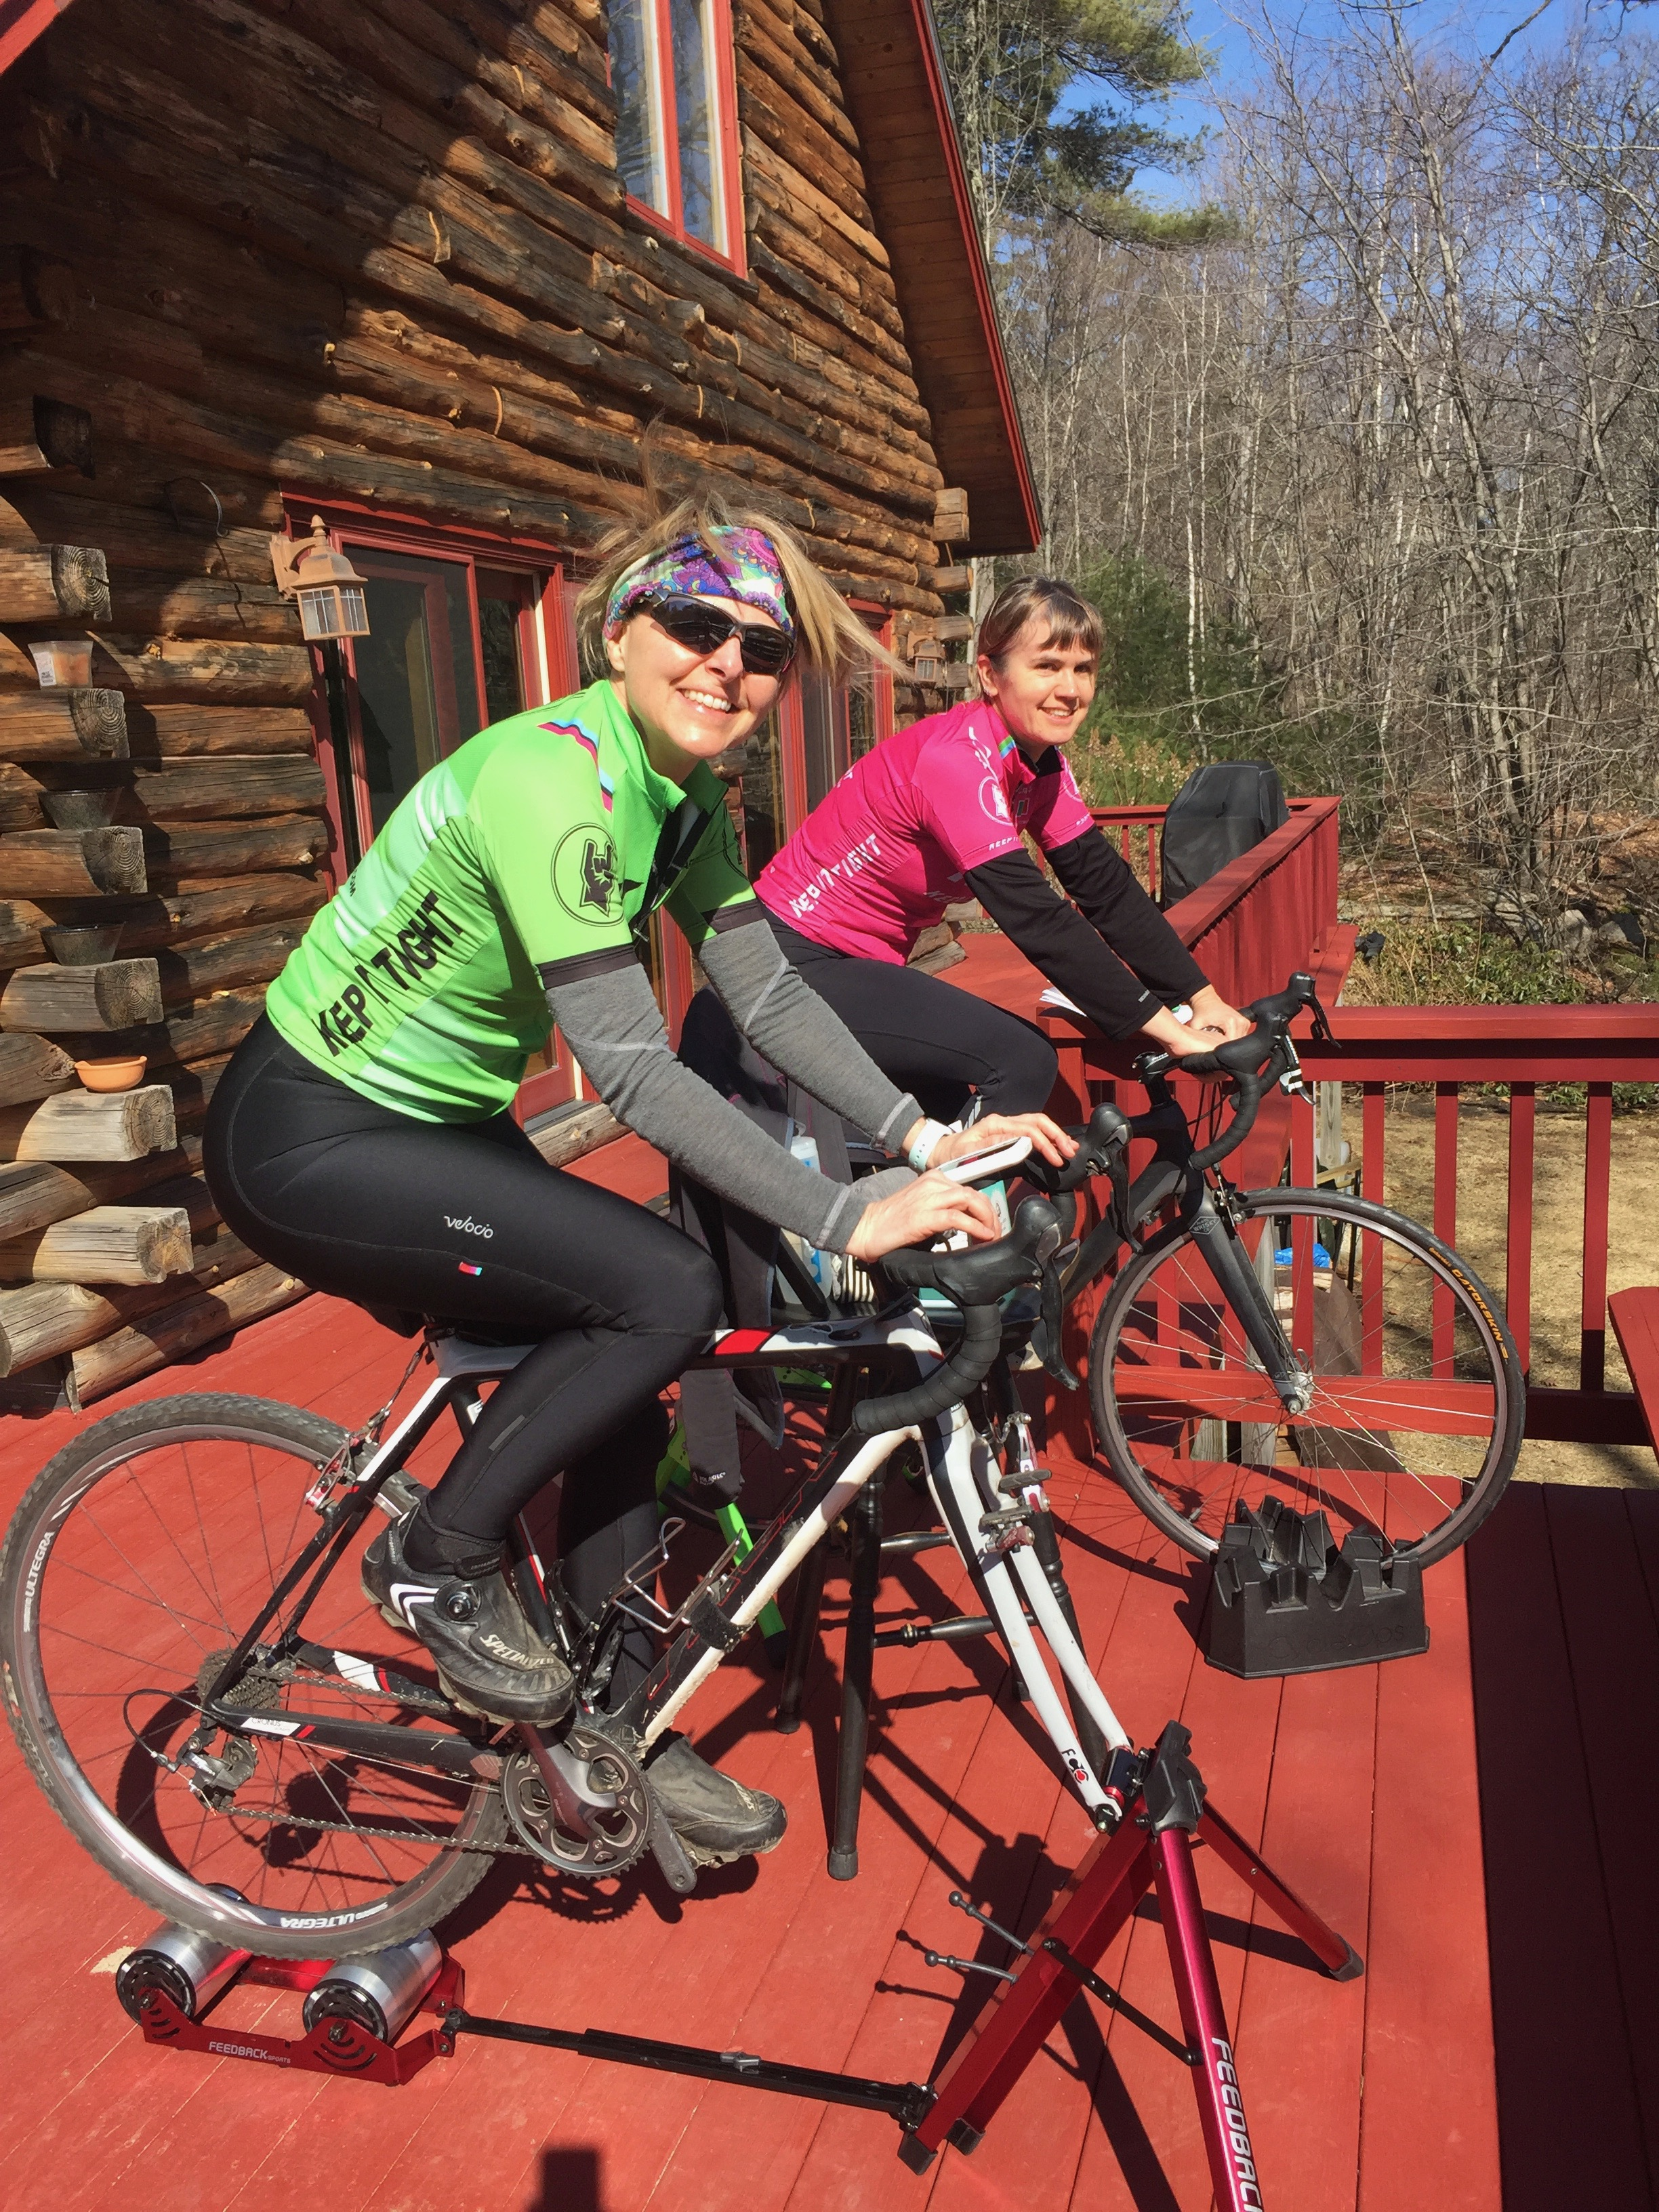 Michele and Rachel, smiling and pedaling on their trainers on the cold but sunny deck.